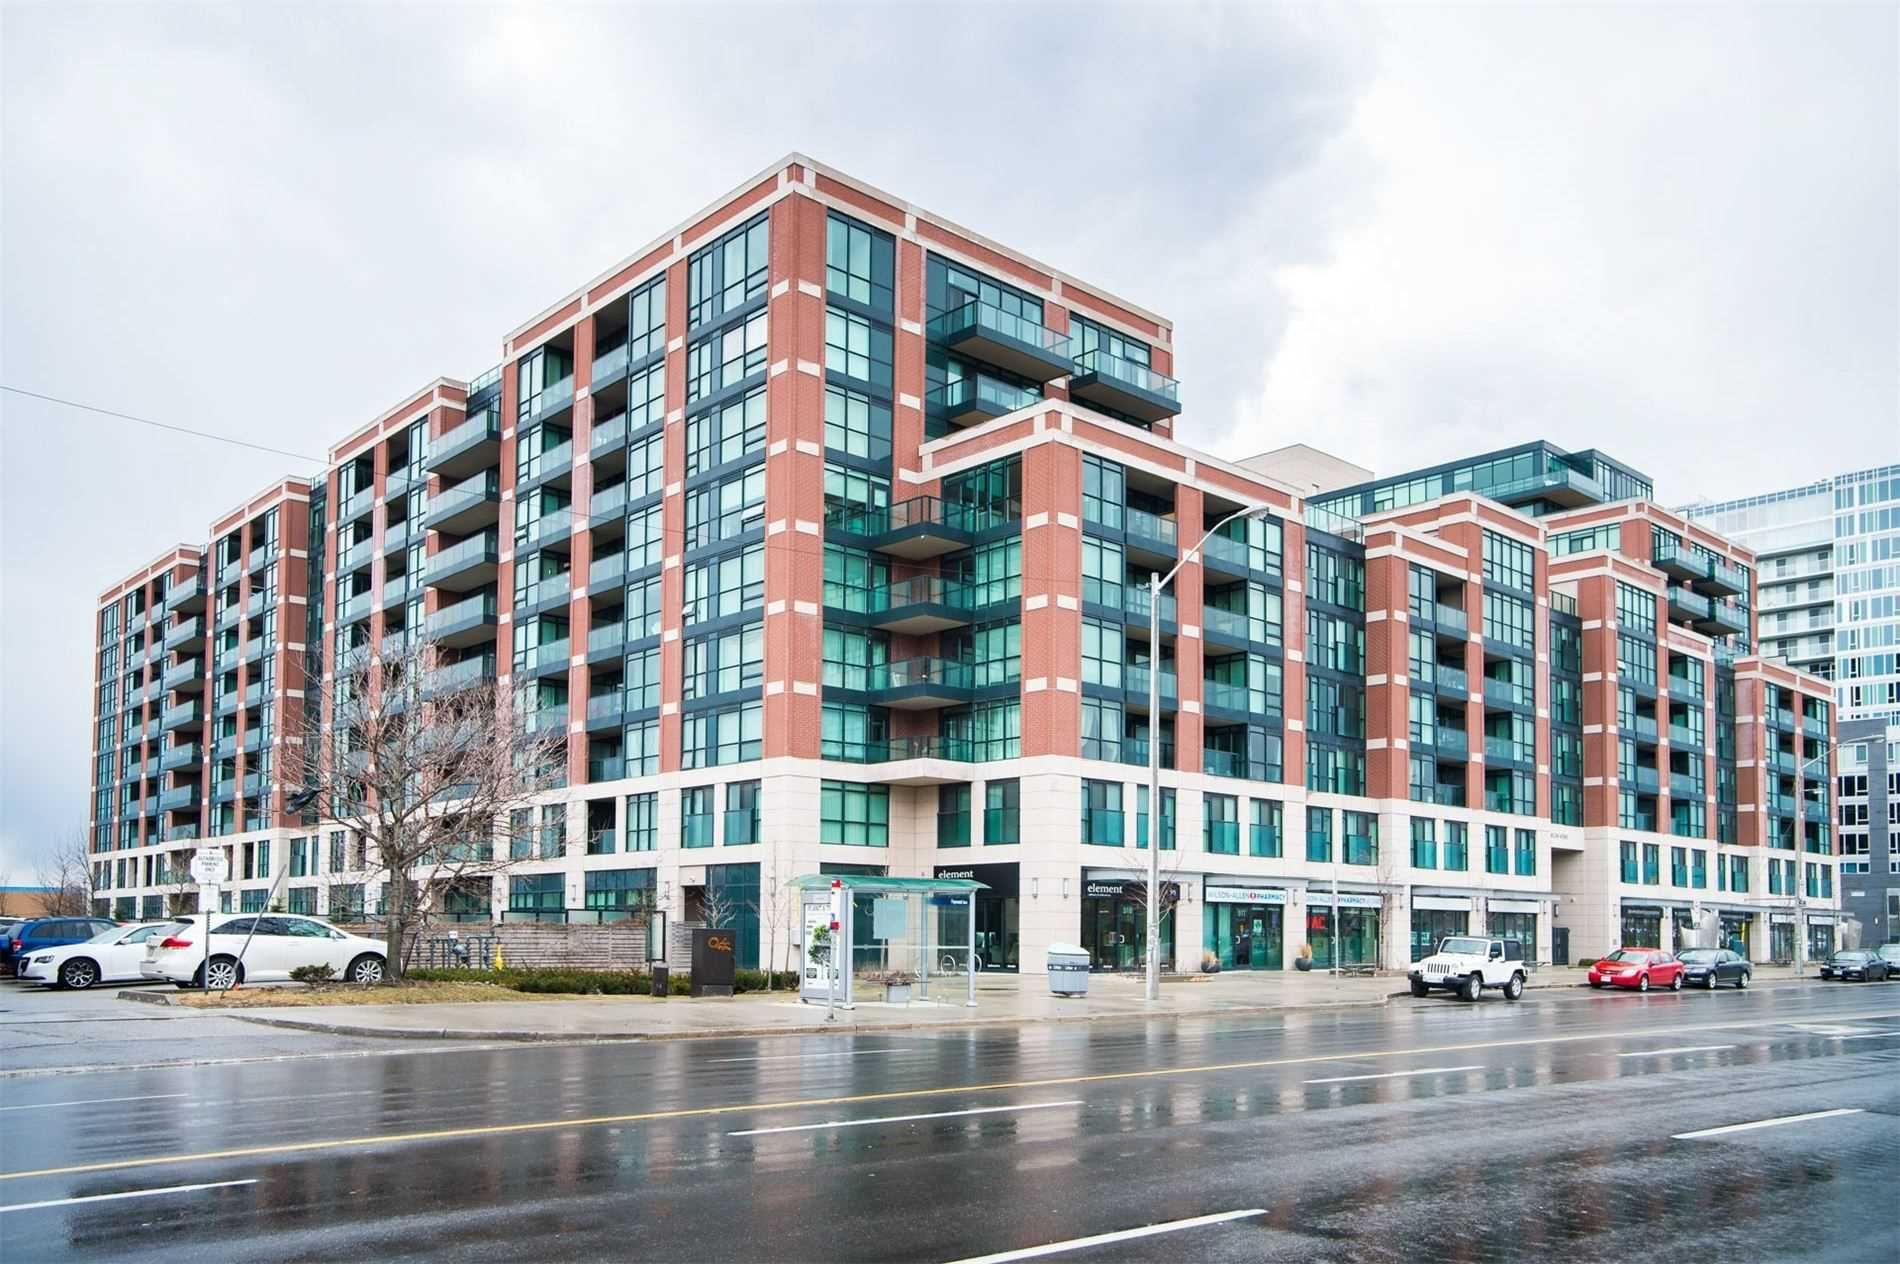 525 Wilson Ave, unit 915 for sale in Toronto - image #1